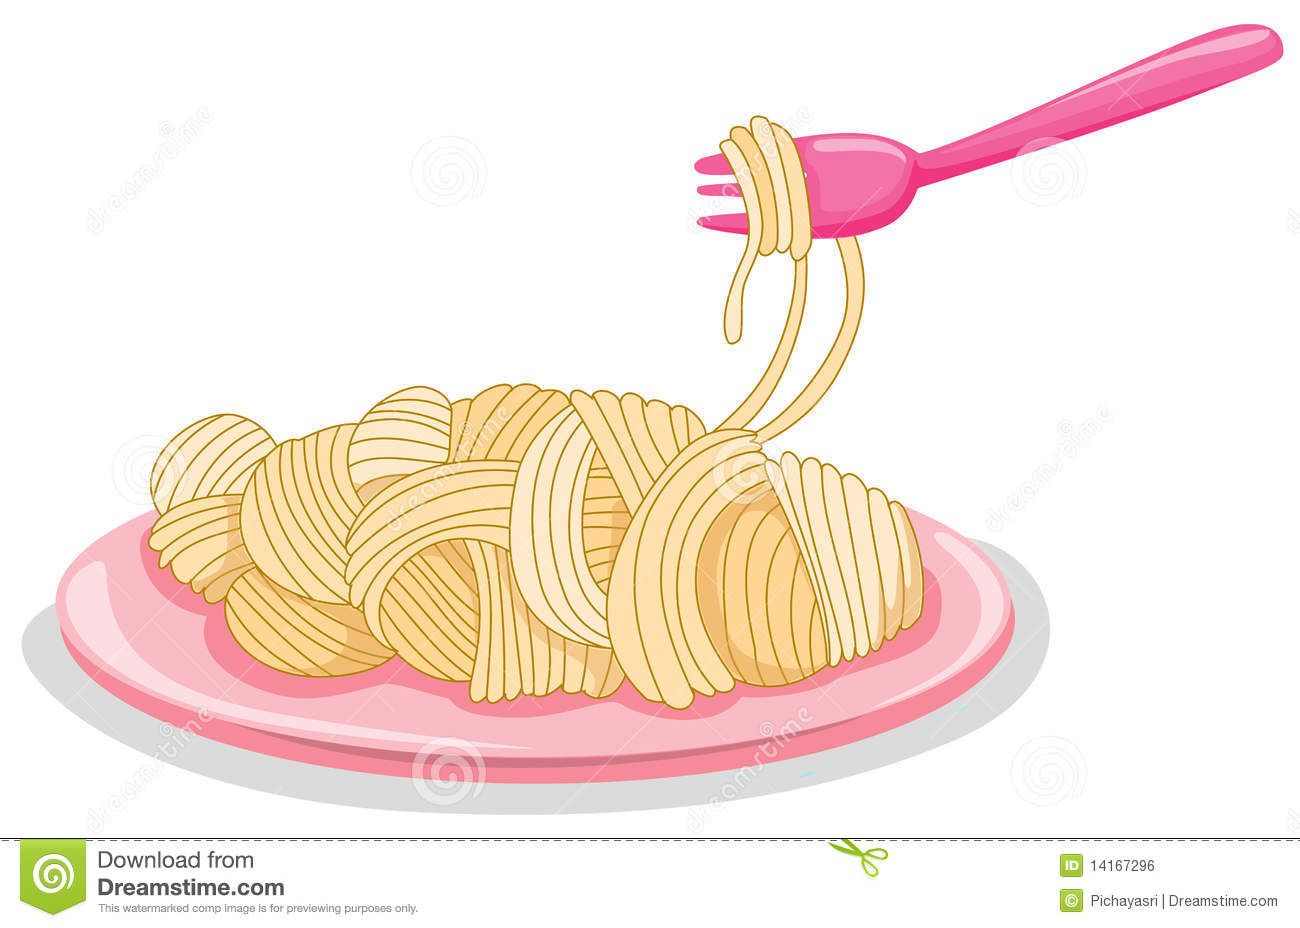 A Plate Of Uncooked Pasta With Fork Royalty Free Stock